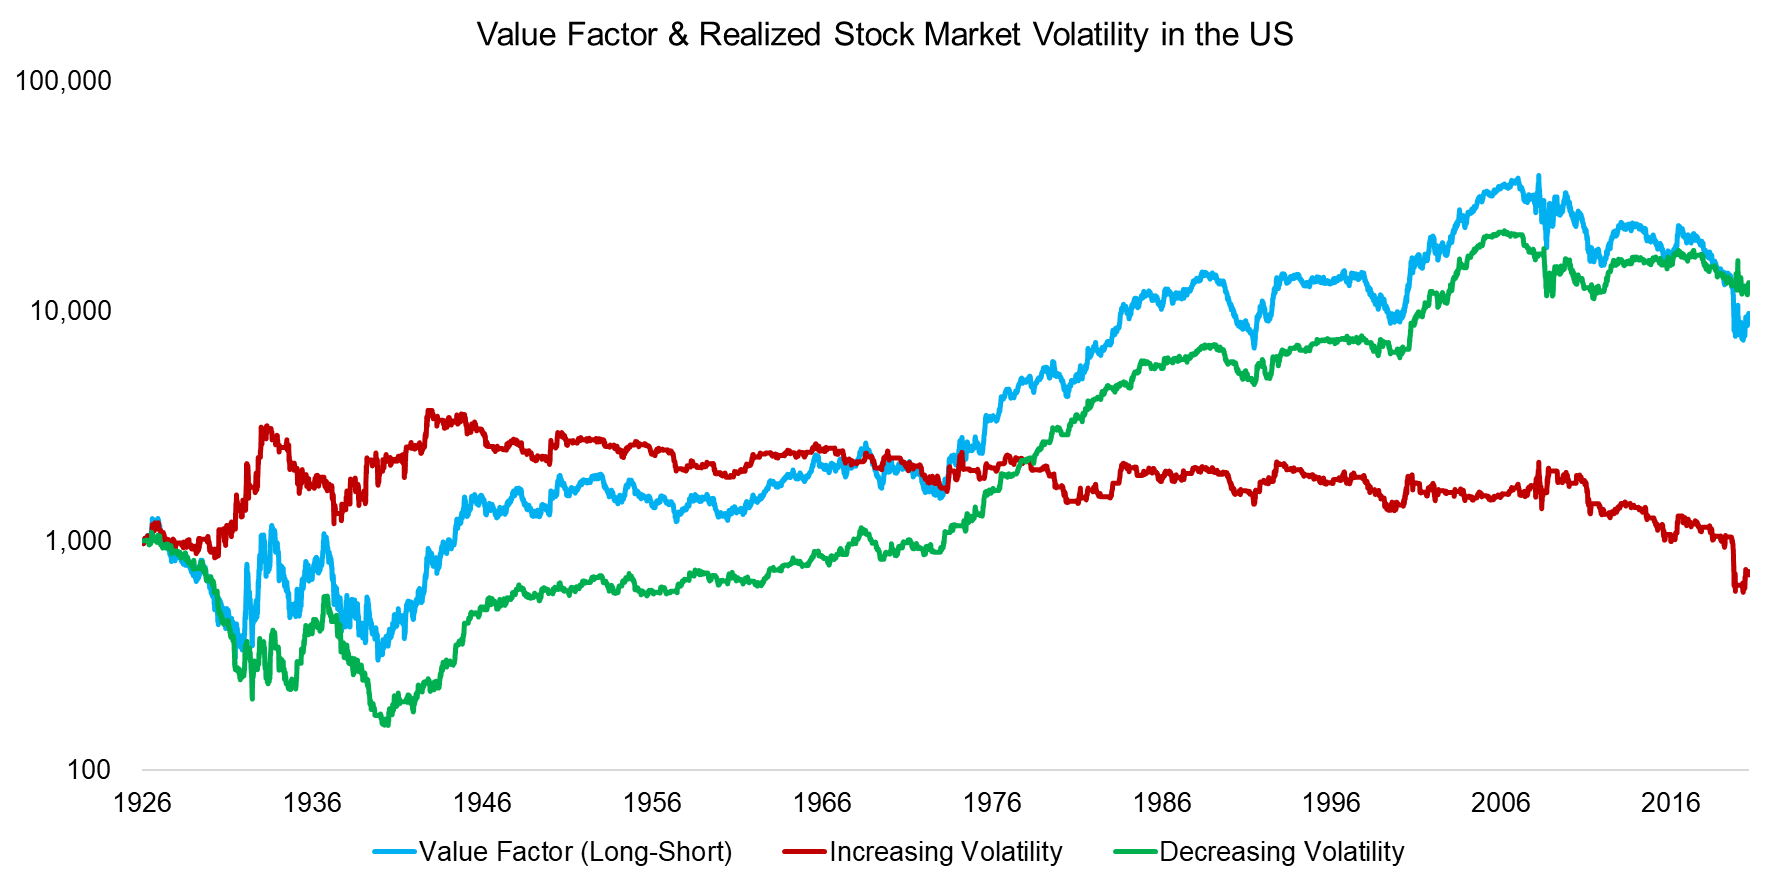 Value Factor & Realized Stock Market Volatility in the US